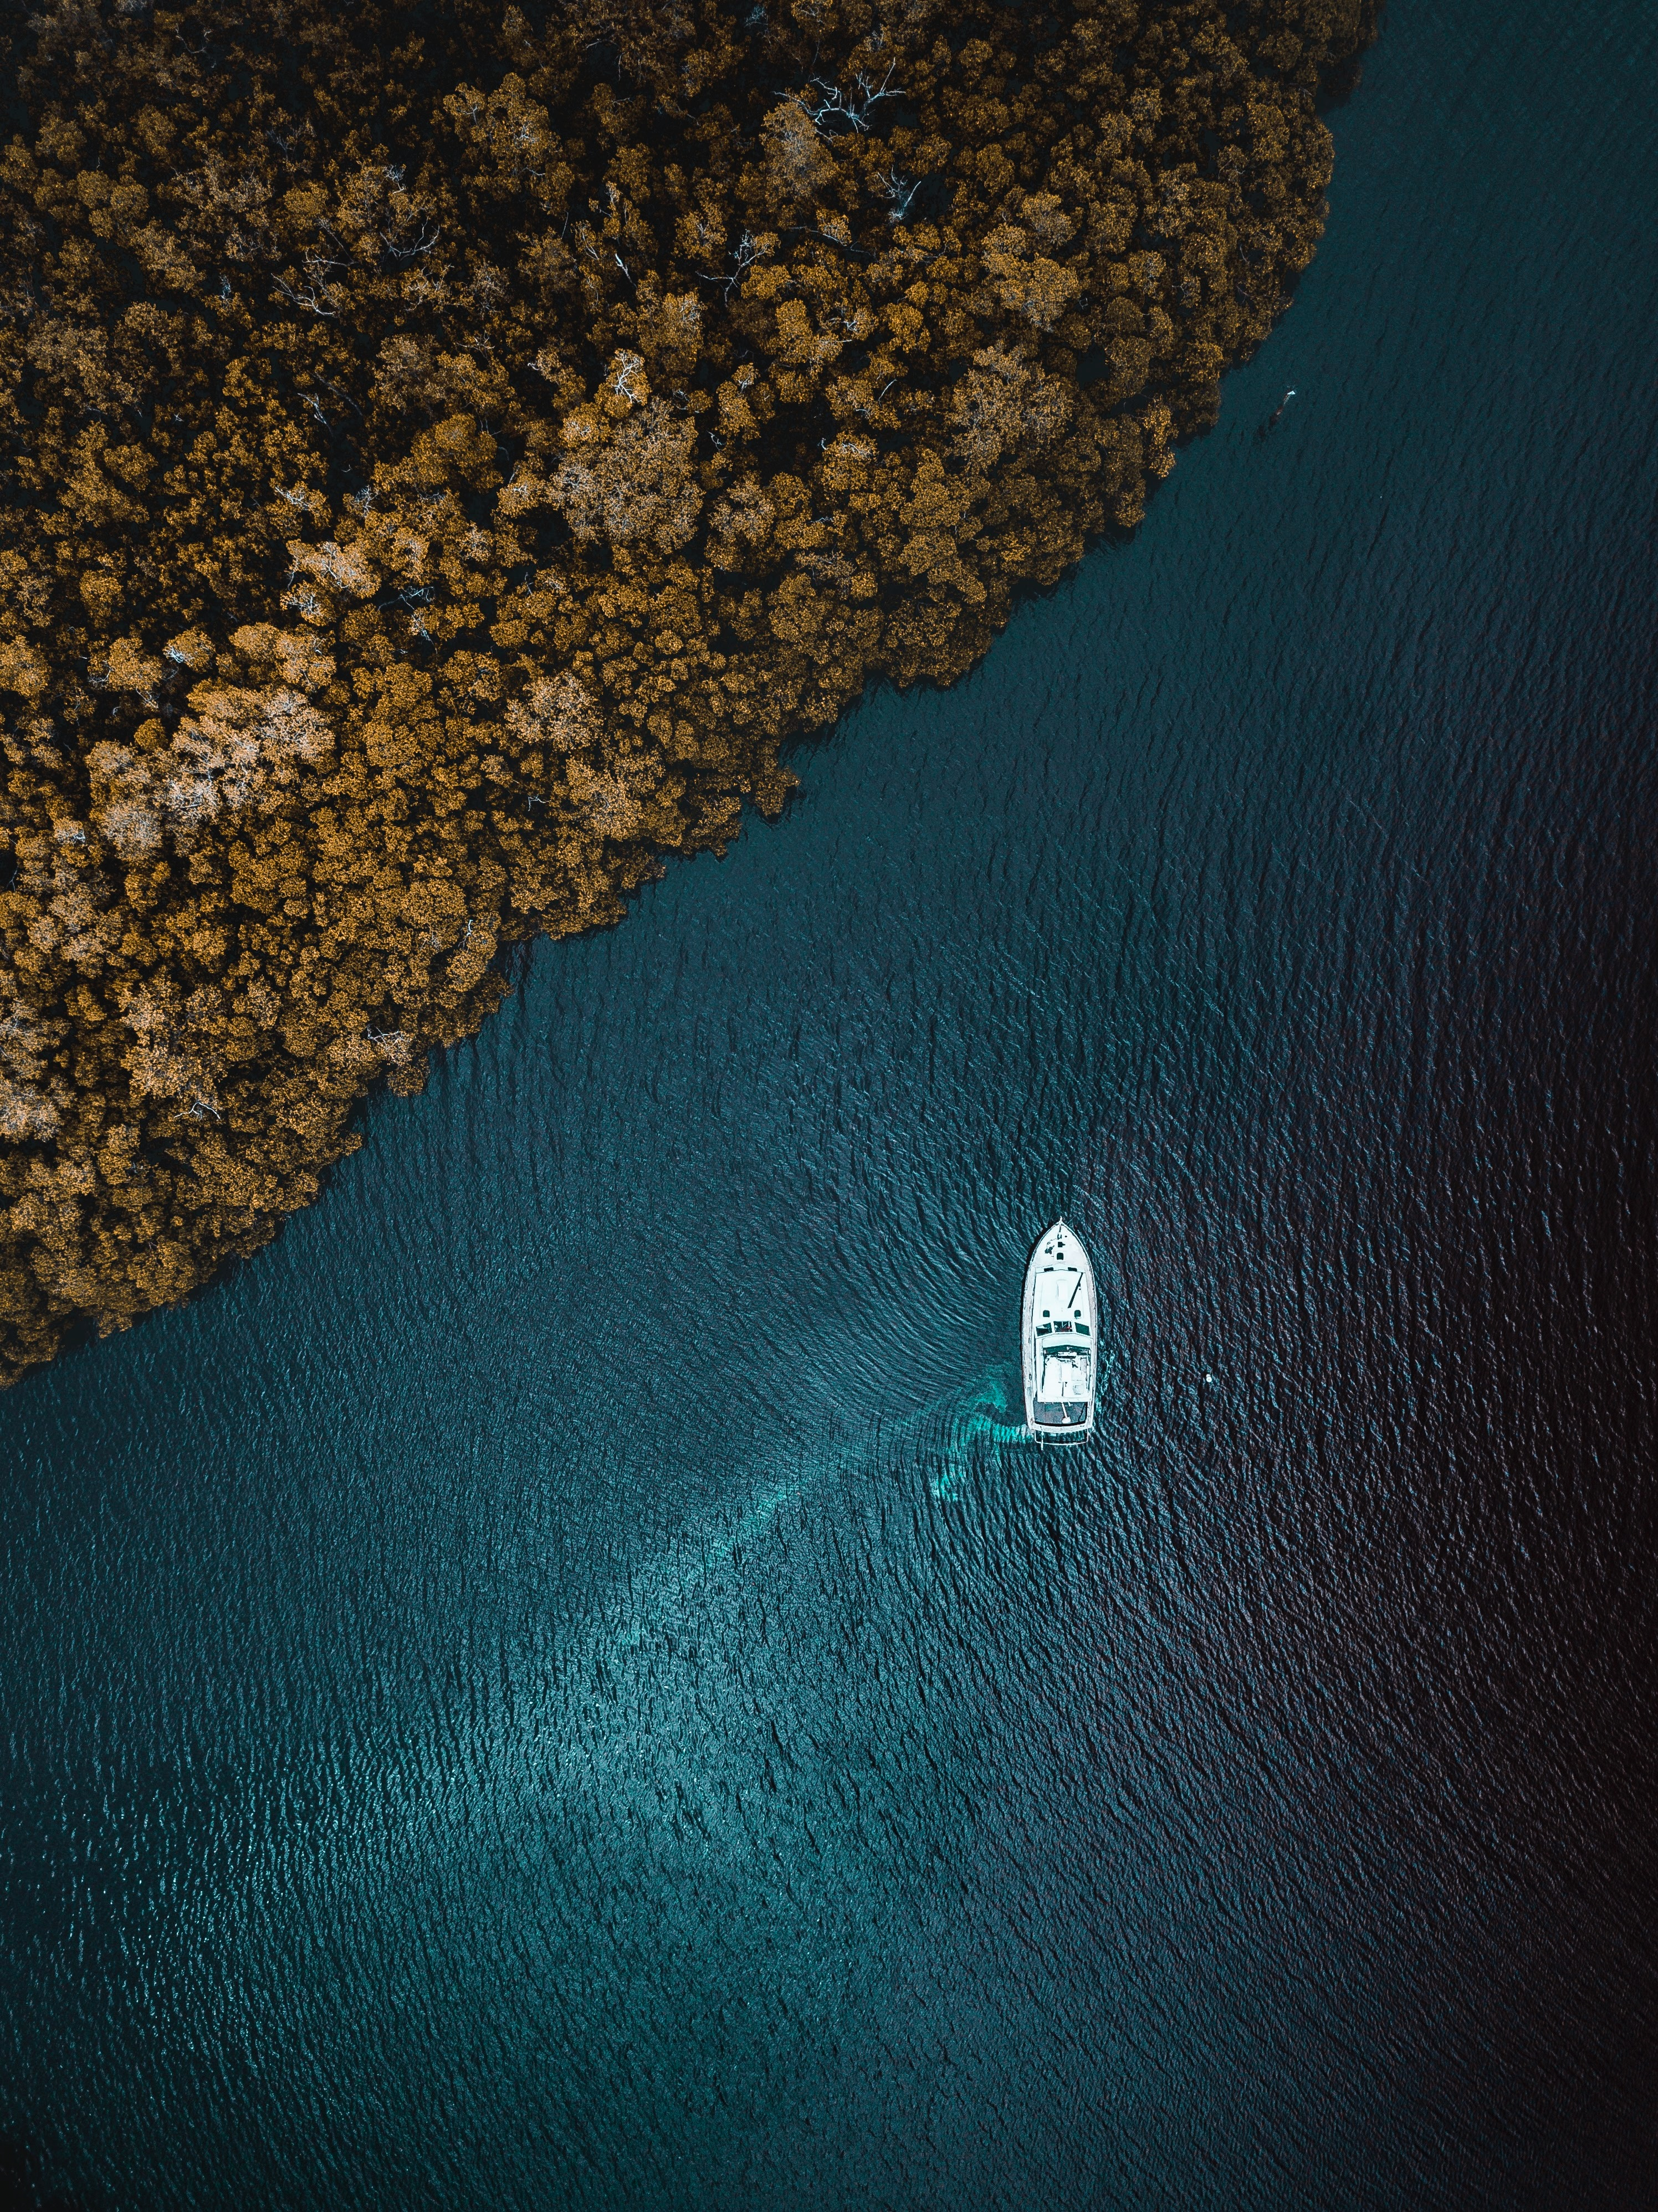 116755 download wallpaper Trees, Nature, Sea, View From Above, Shore, Bank, Yacht screensavers and pictures for free